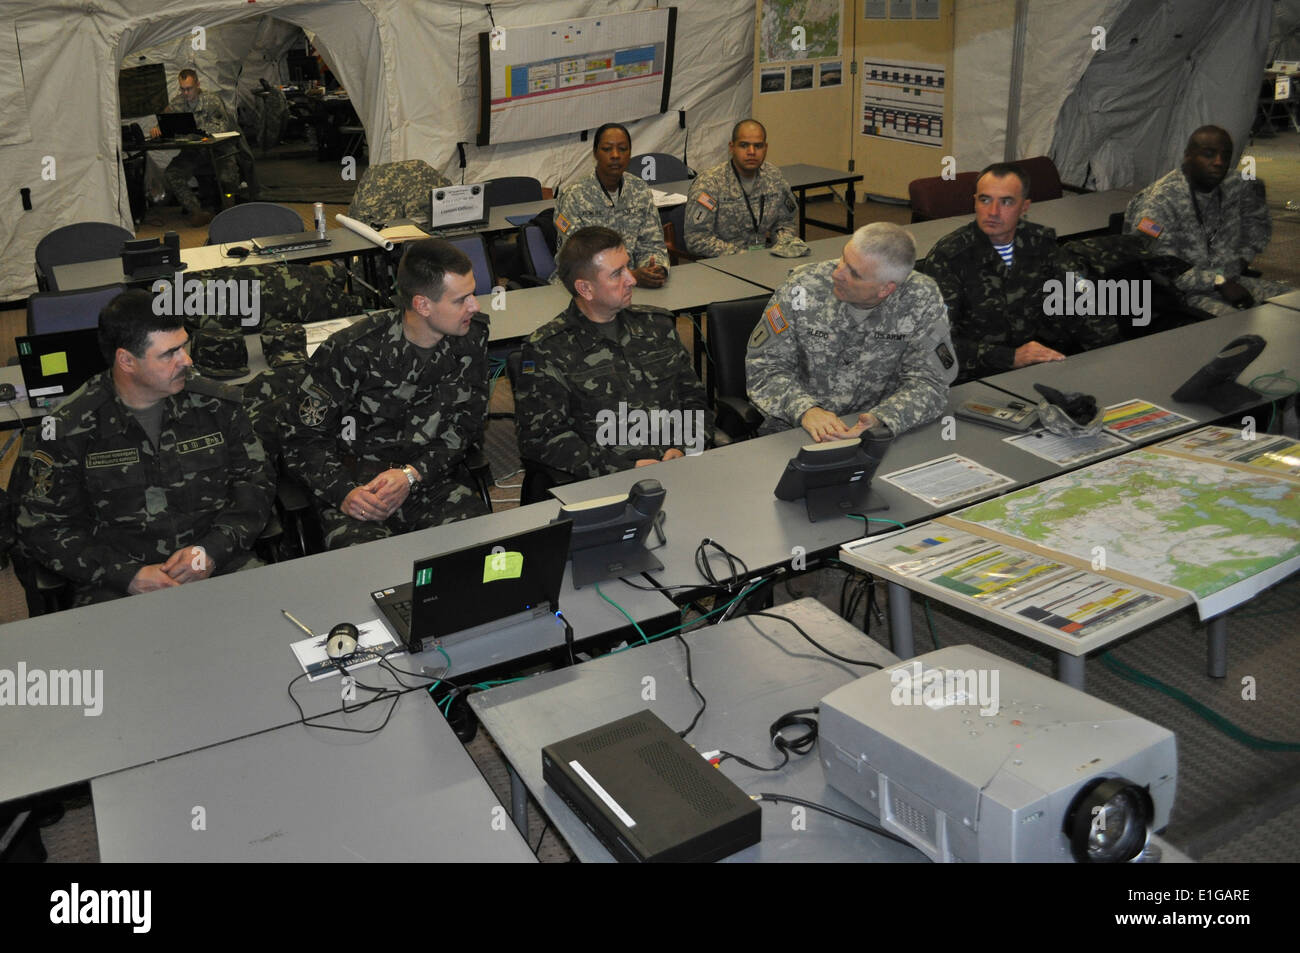 U.S. Army Col. Keith Sledd, director of the Saber Strike 11 exercise, third from right, briefs the Ukranian Land Forces delegat - Stock Image